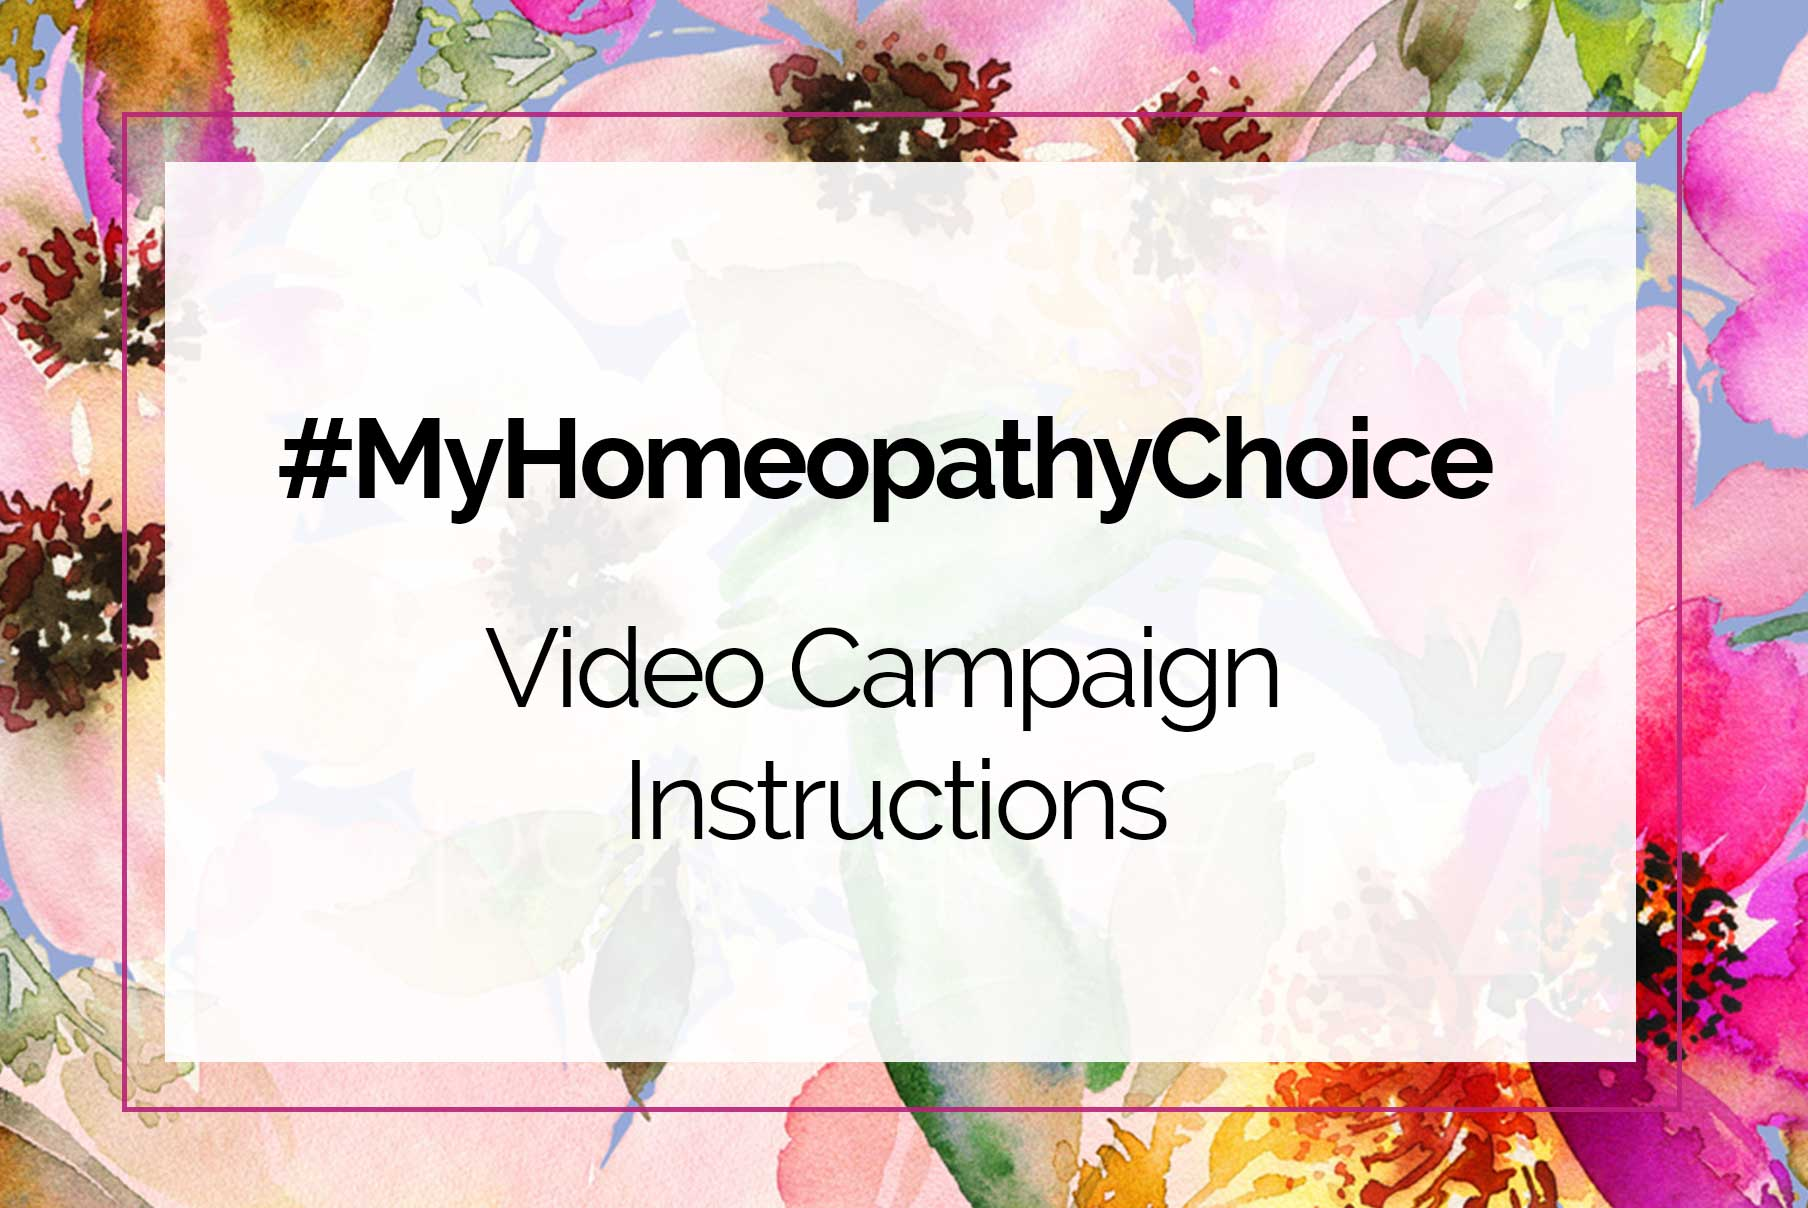 How to Create & Post a #MyHomeopathyChoice Video